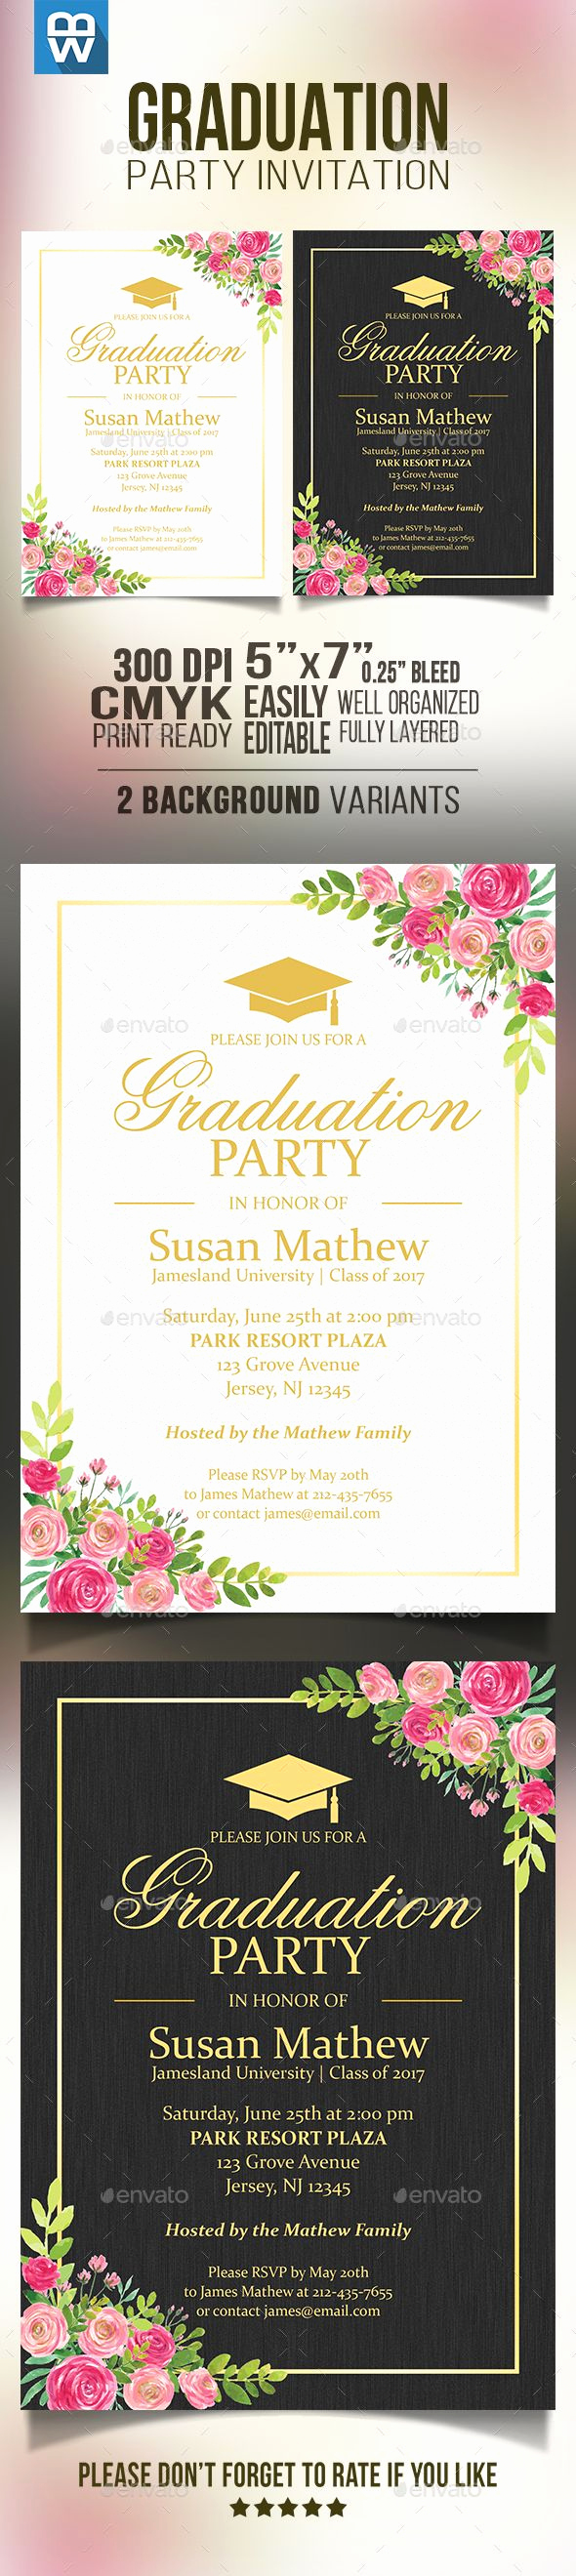 Graduation Party Invitation Templates Inspirational 25 Unique Invitation Templates Ideas On Pinterest